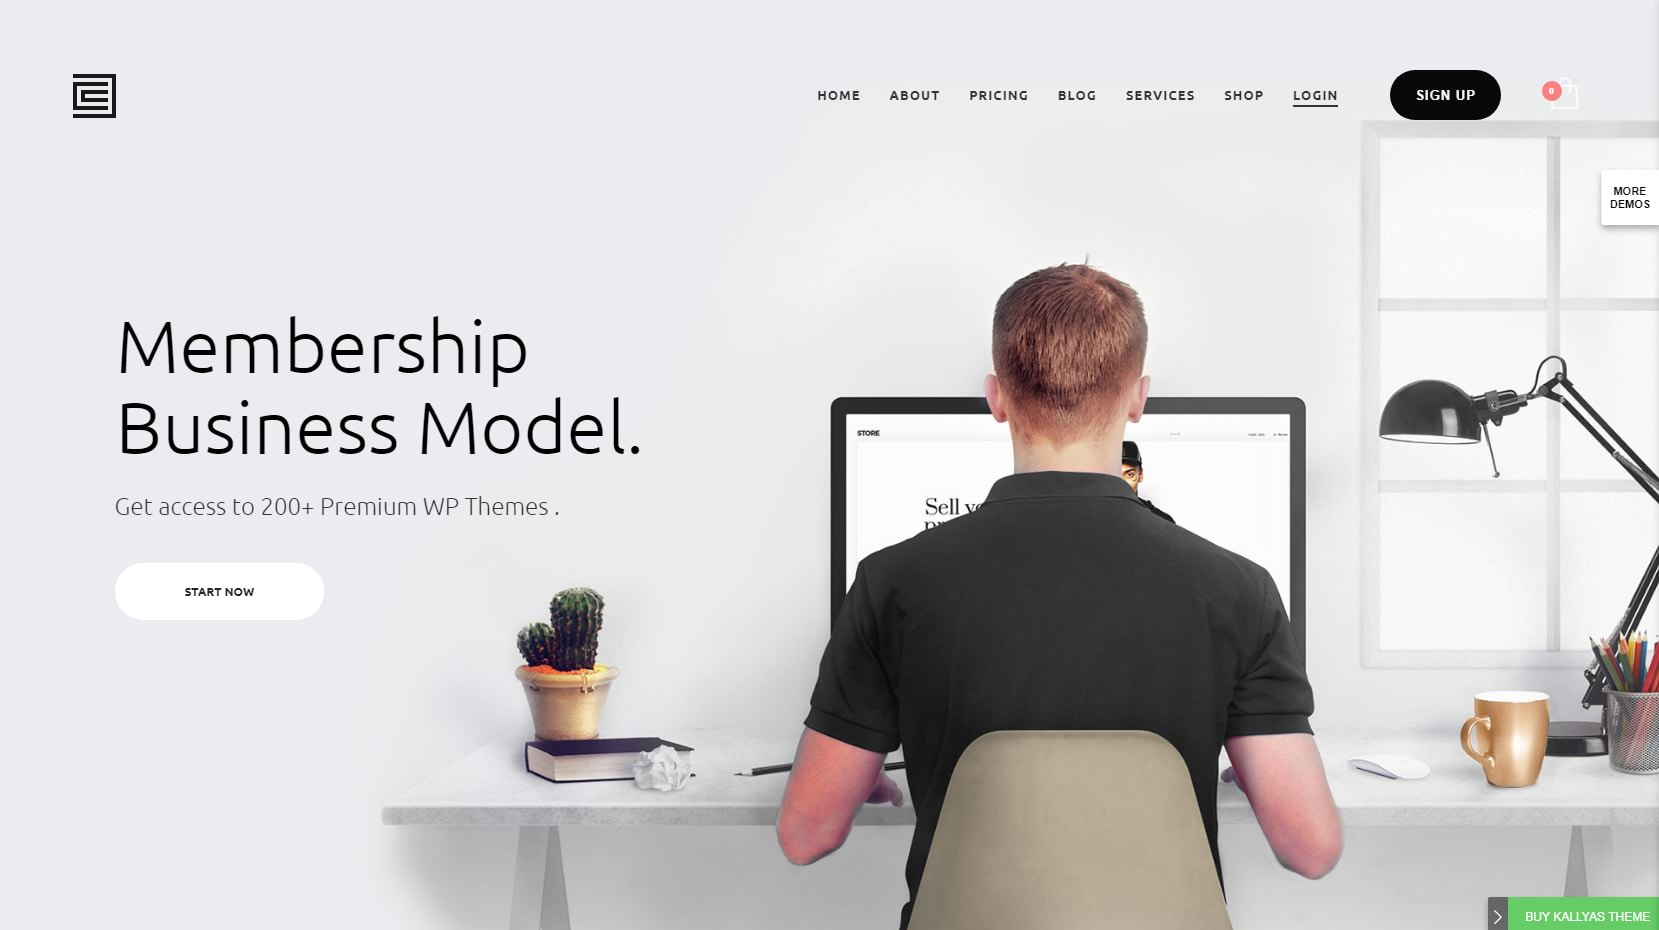 11 Best WordPress Themes for a Software Company [2019